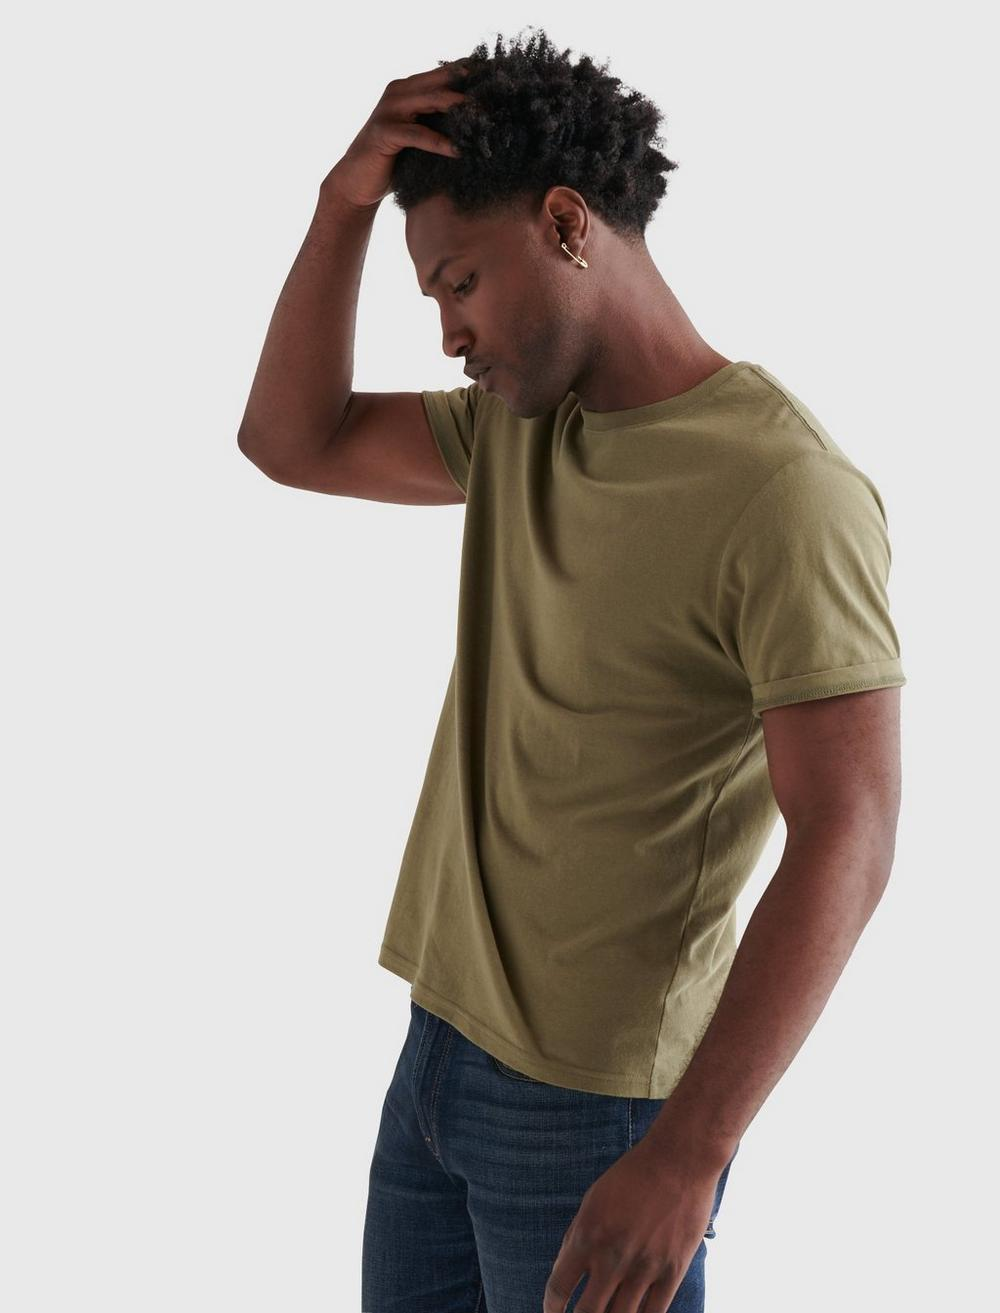 SUEDED JERSEY TEE, image 3